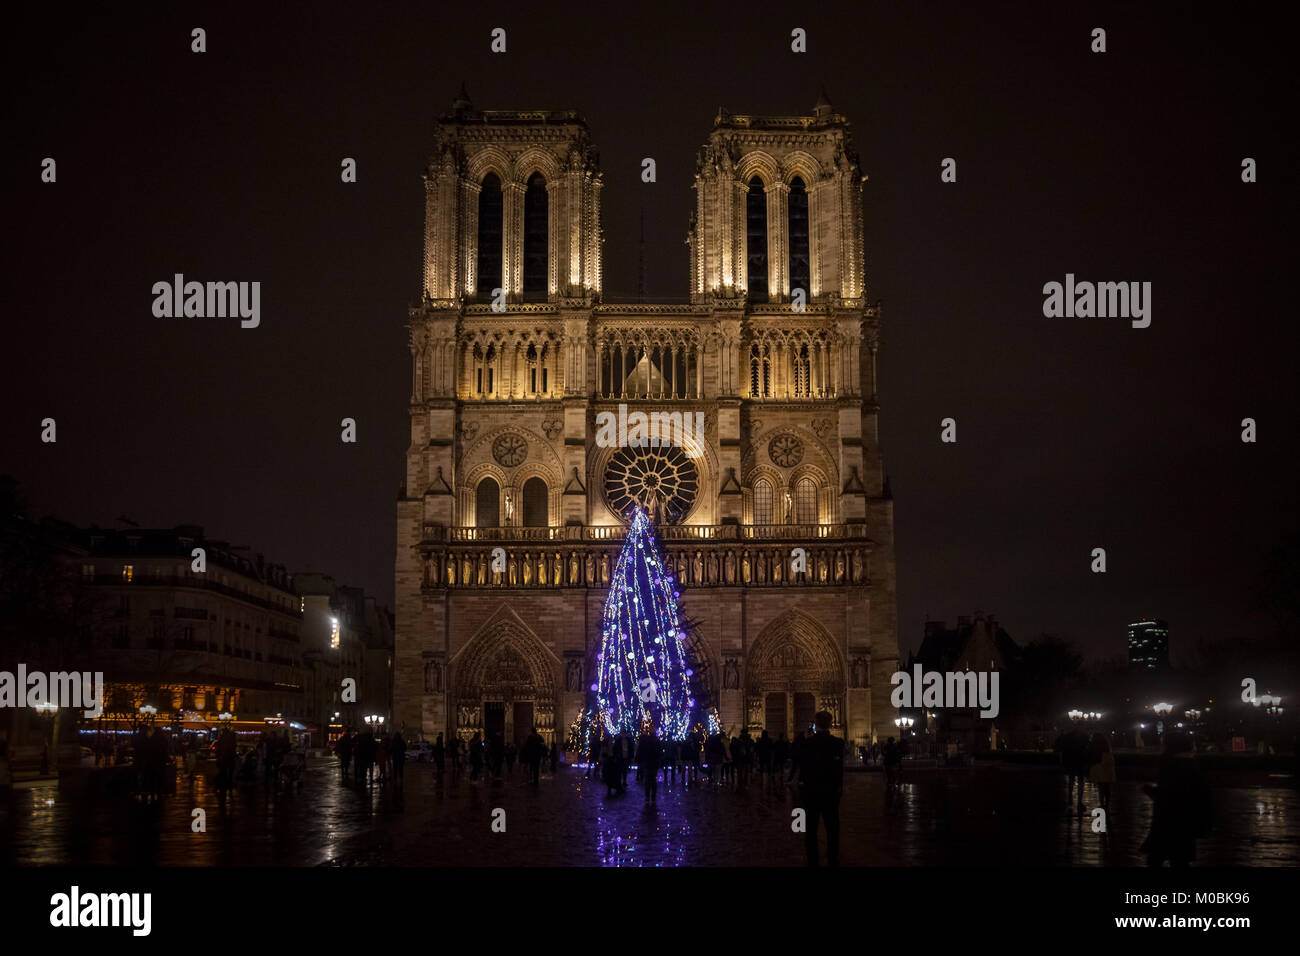 PARIS, FRANCE - DECEMBER 20, 2017:  Notre Dame de Paris Cathedral at night with the traditional Christmas tree in - Stock Image